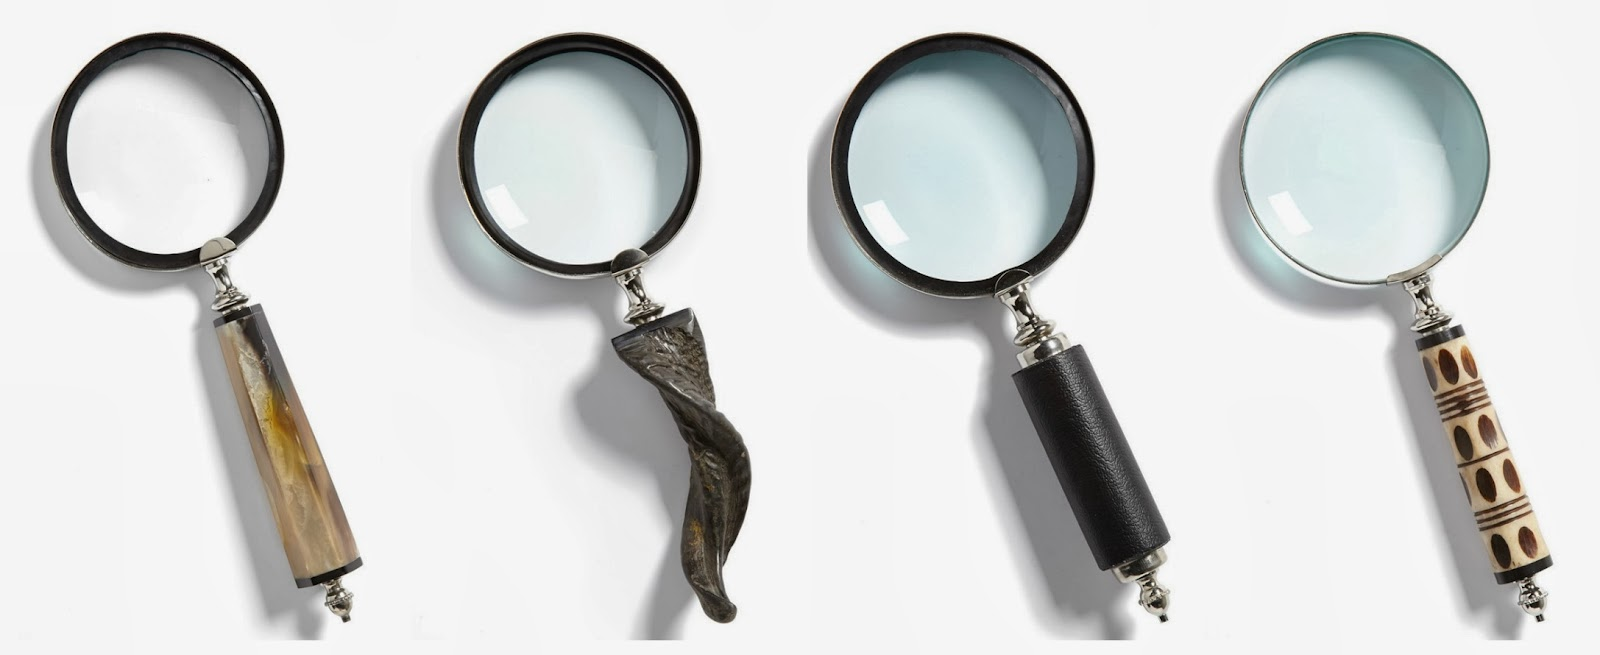 Magnifying Glasses As Decorative Accessories